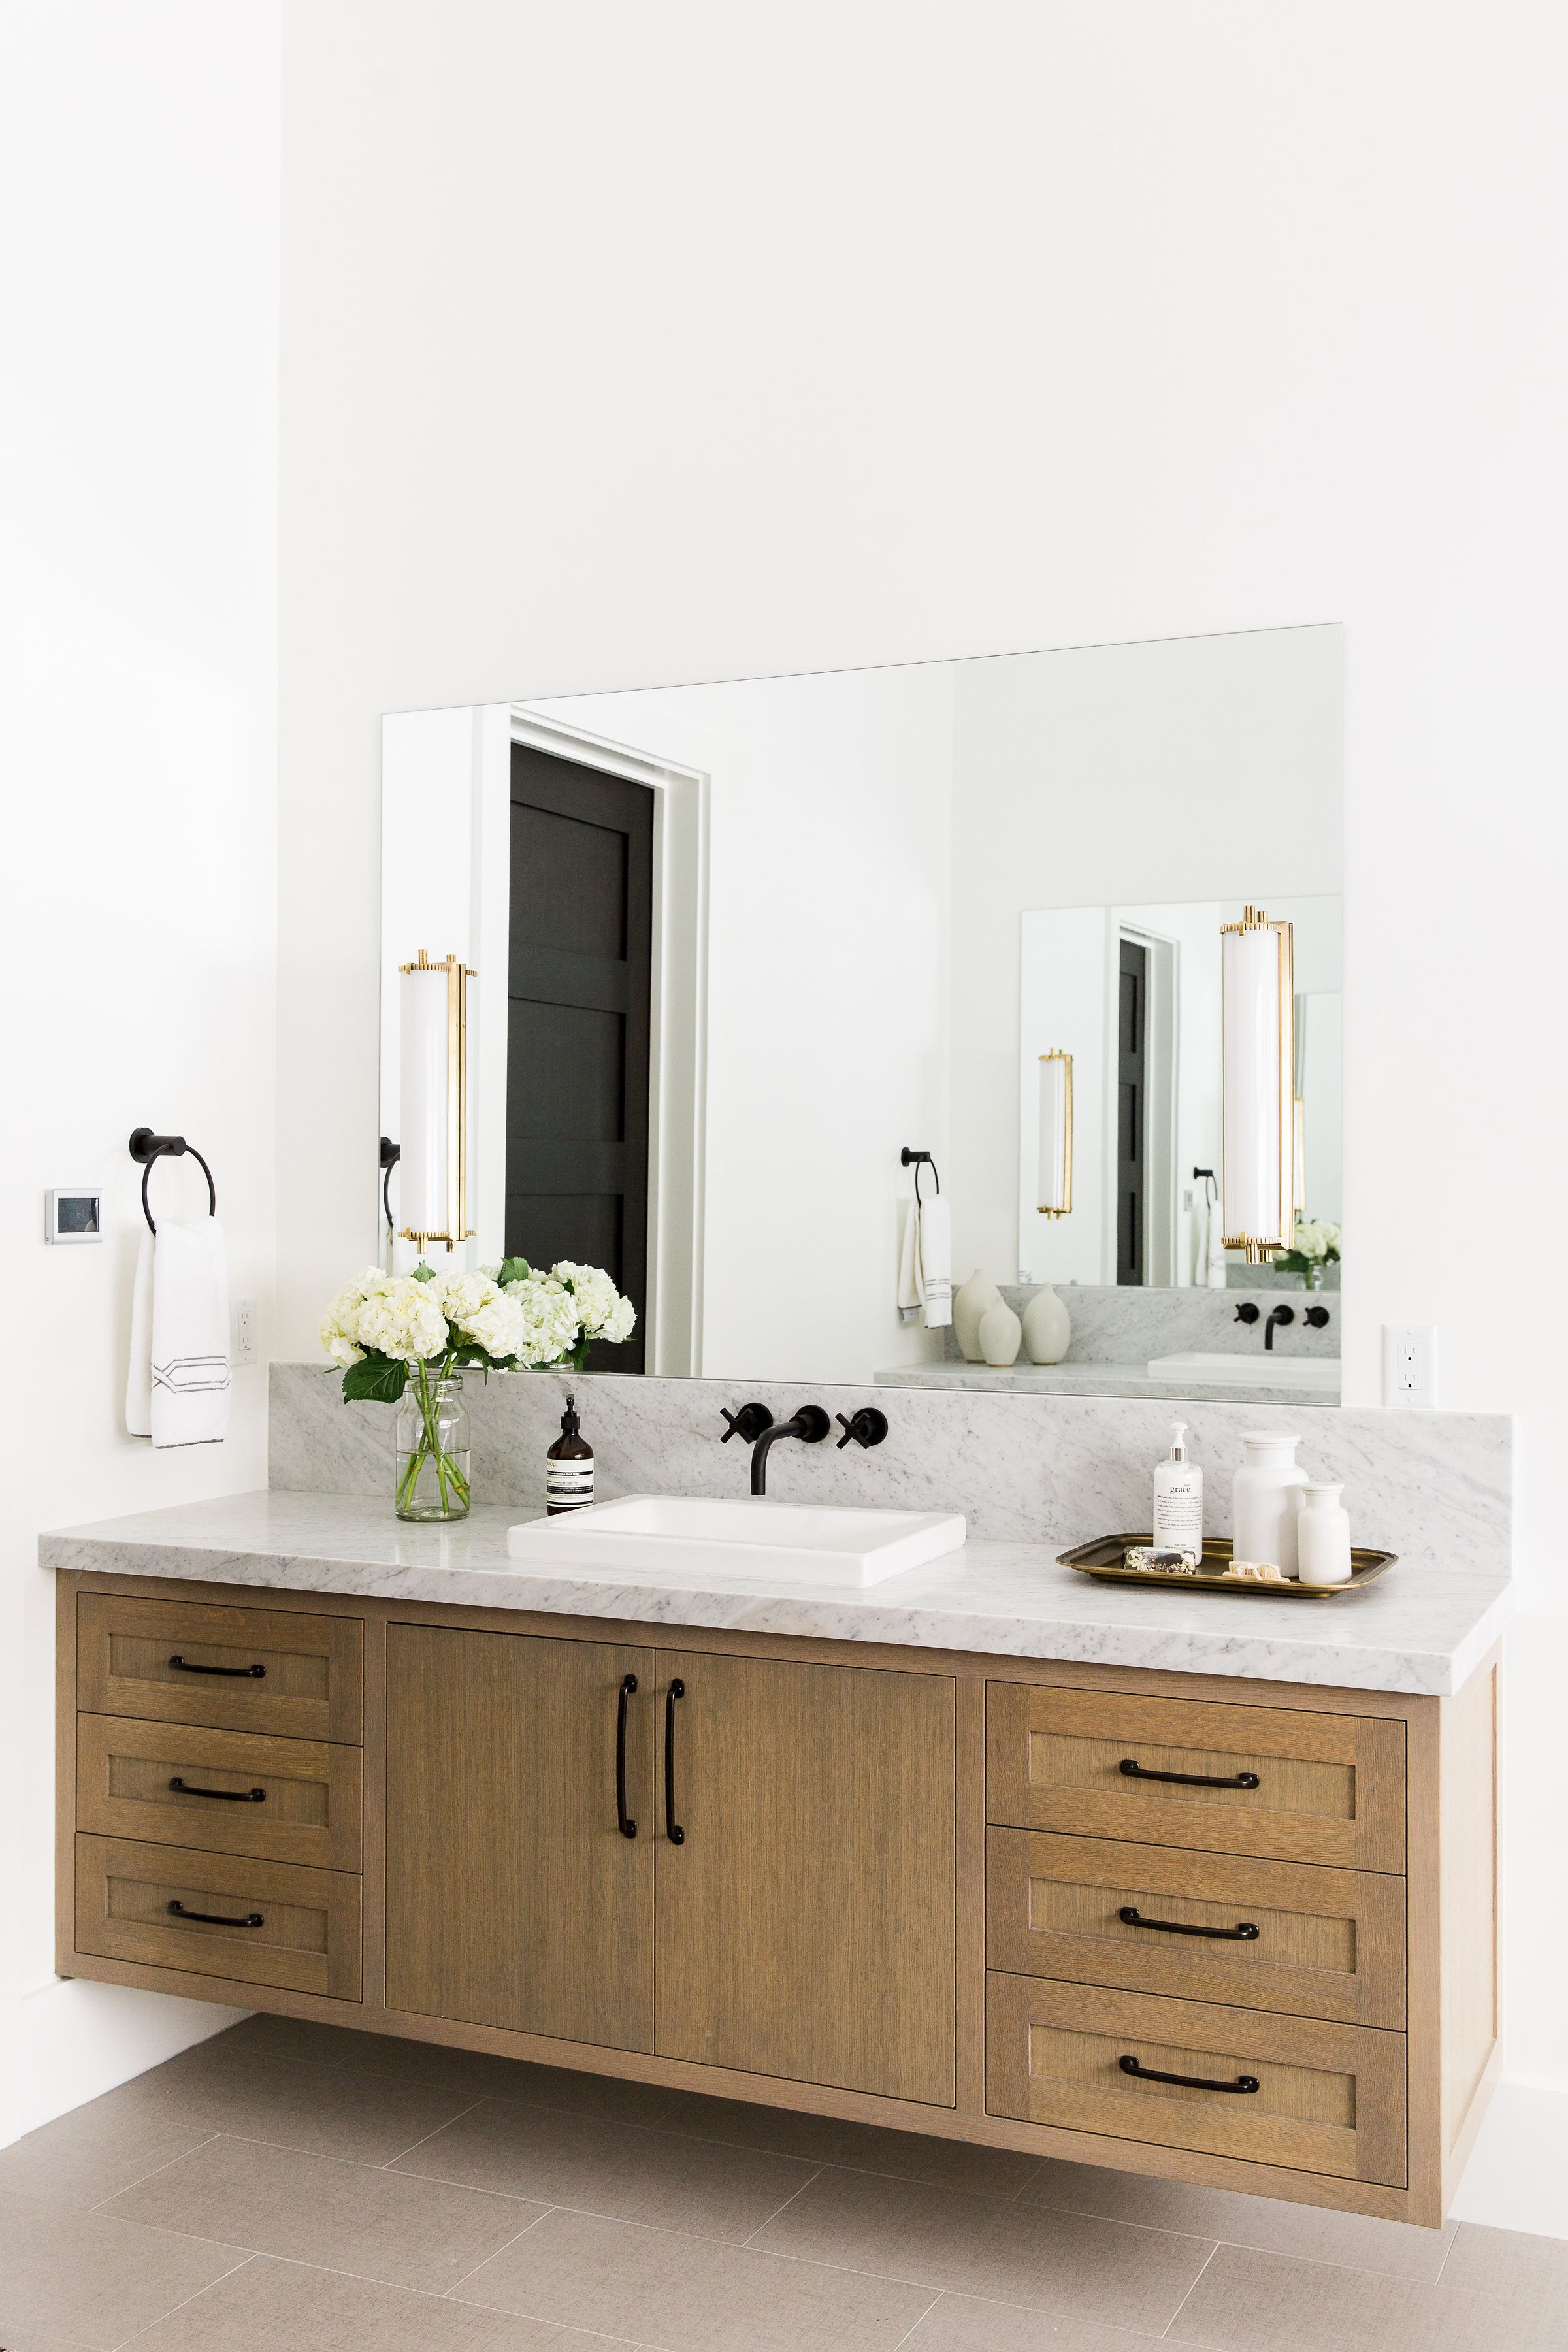 bathroom waterfall single for modern rectangle rustic floating metal tone fancy vanity vessel faucet white stand black ja with chrome porcelain stone sink